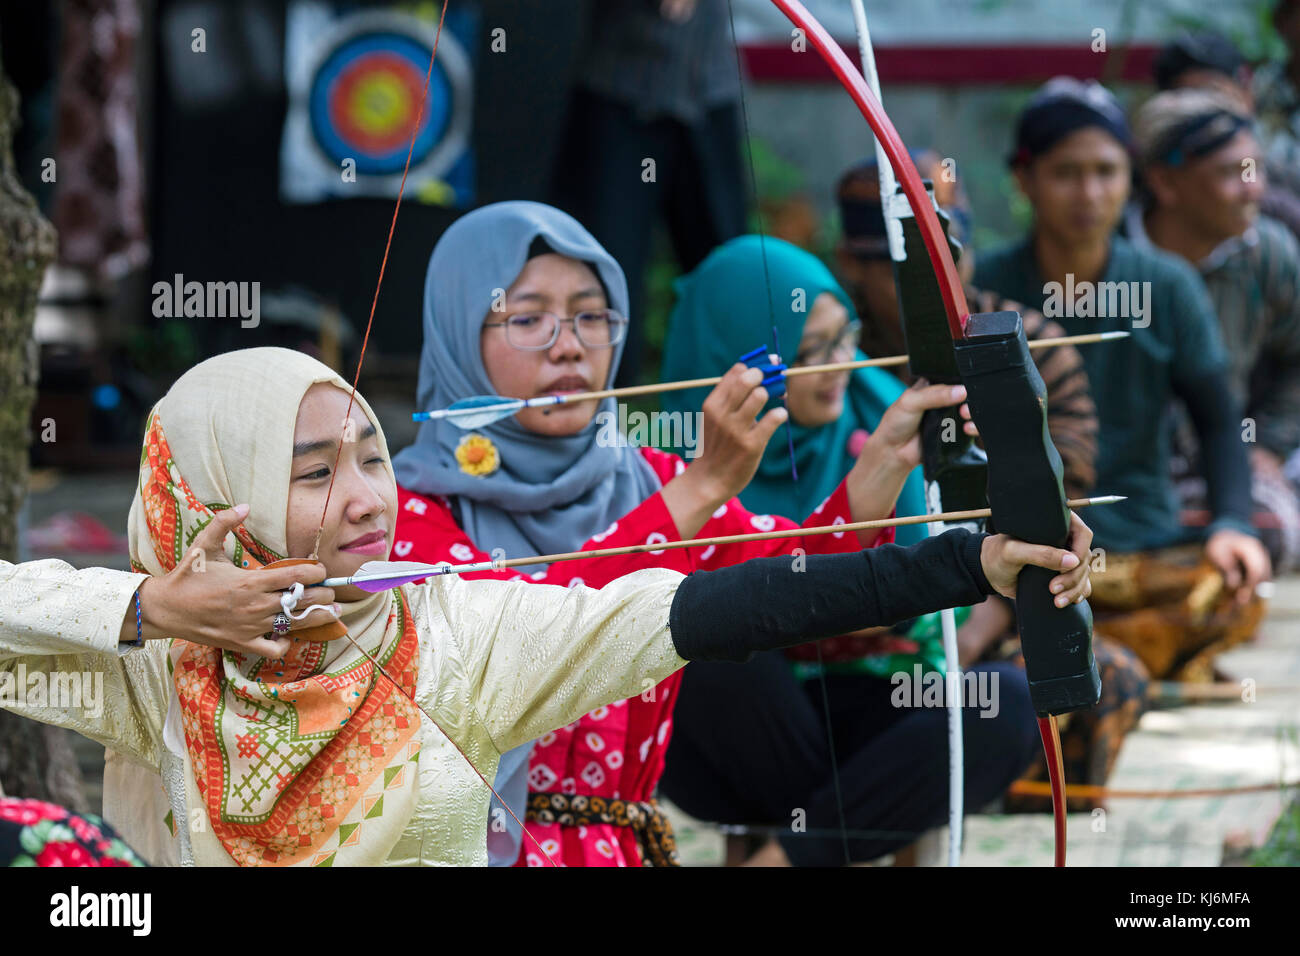 Indonesian girls practicing Jemparingan / traditional Javanese archery by shooting bow and arrows in the city Yogyakarta, - Stock Image